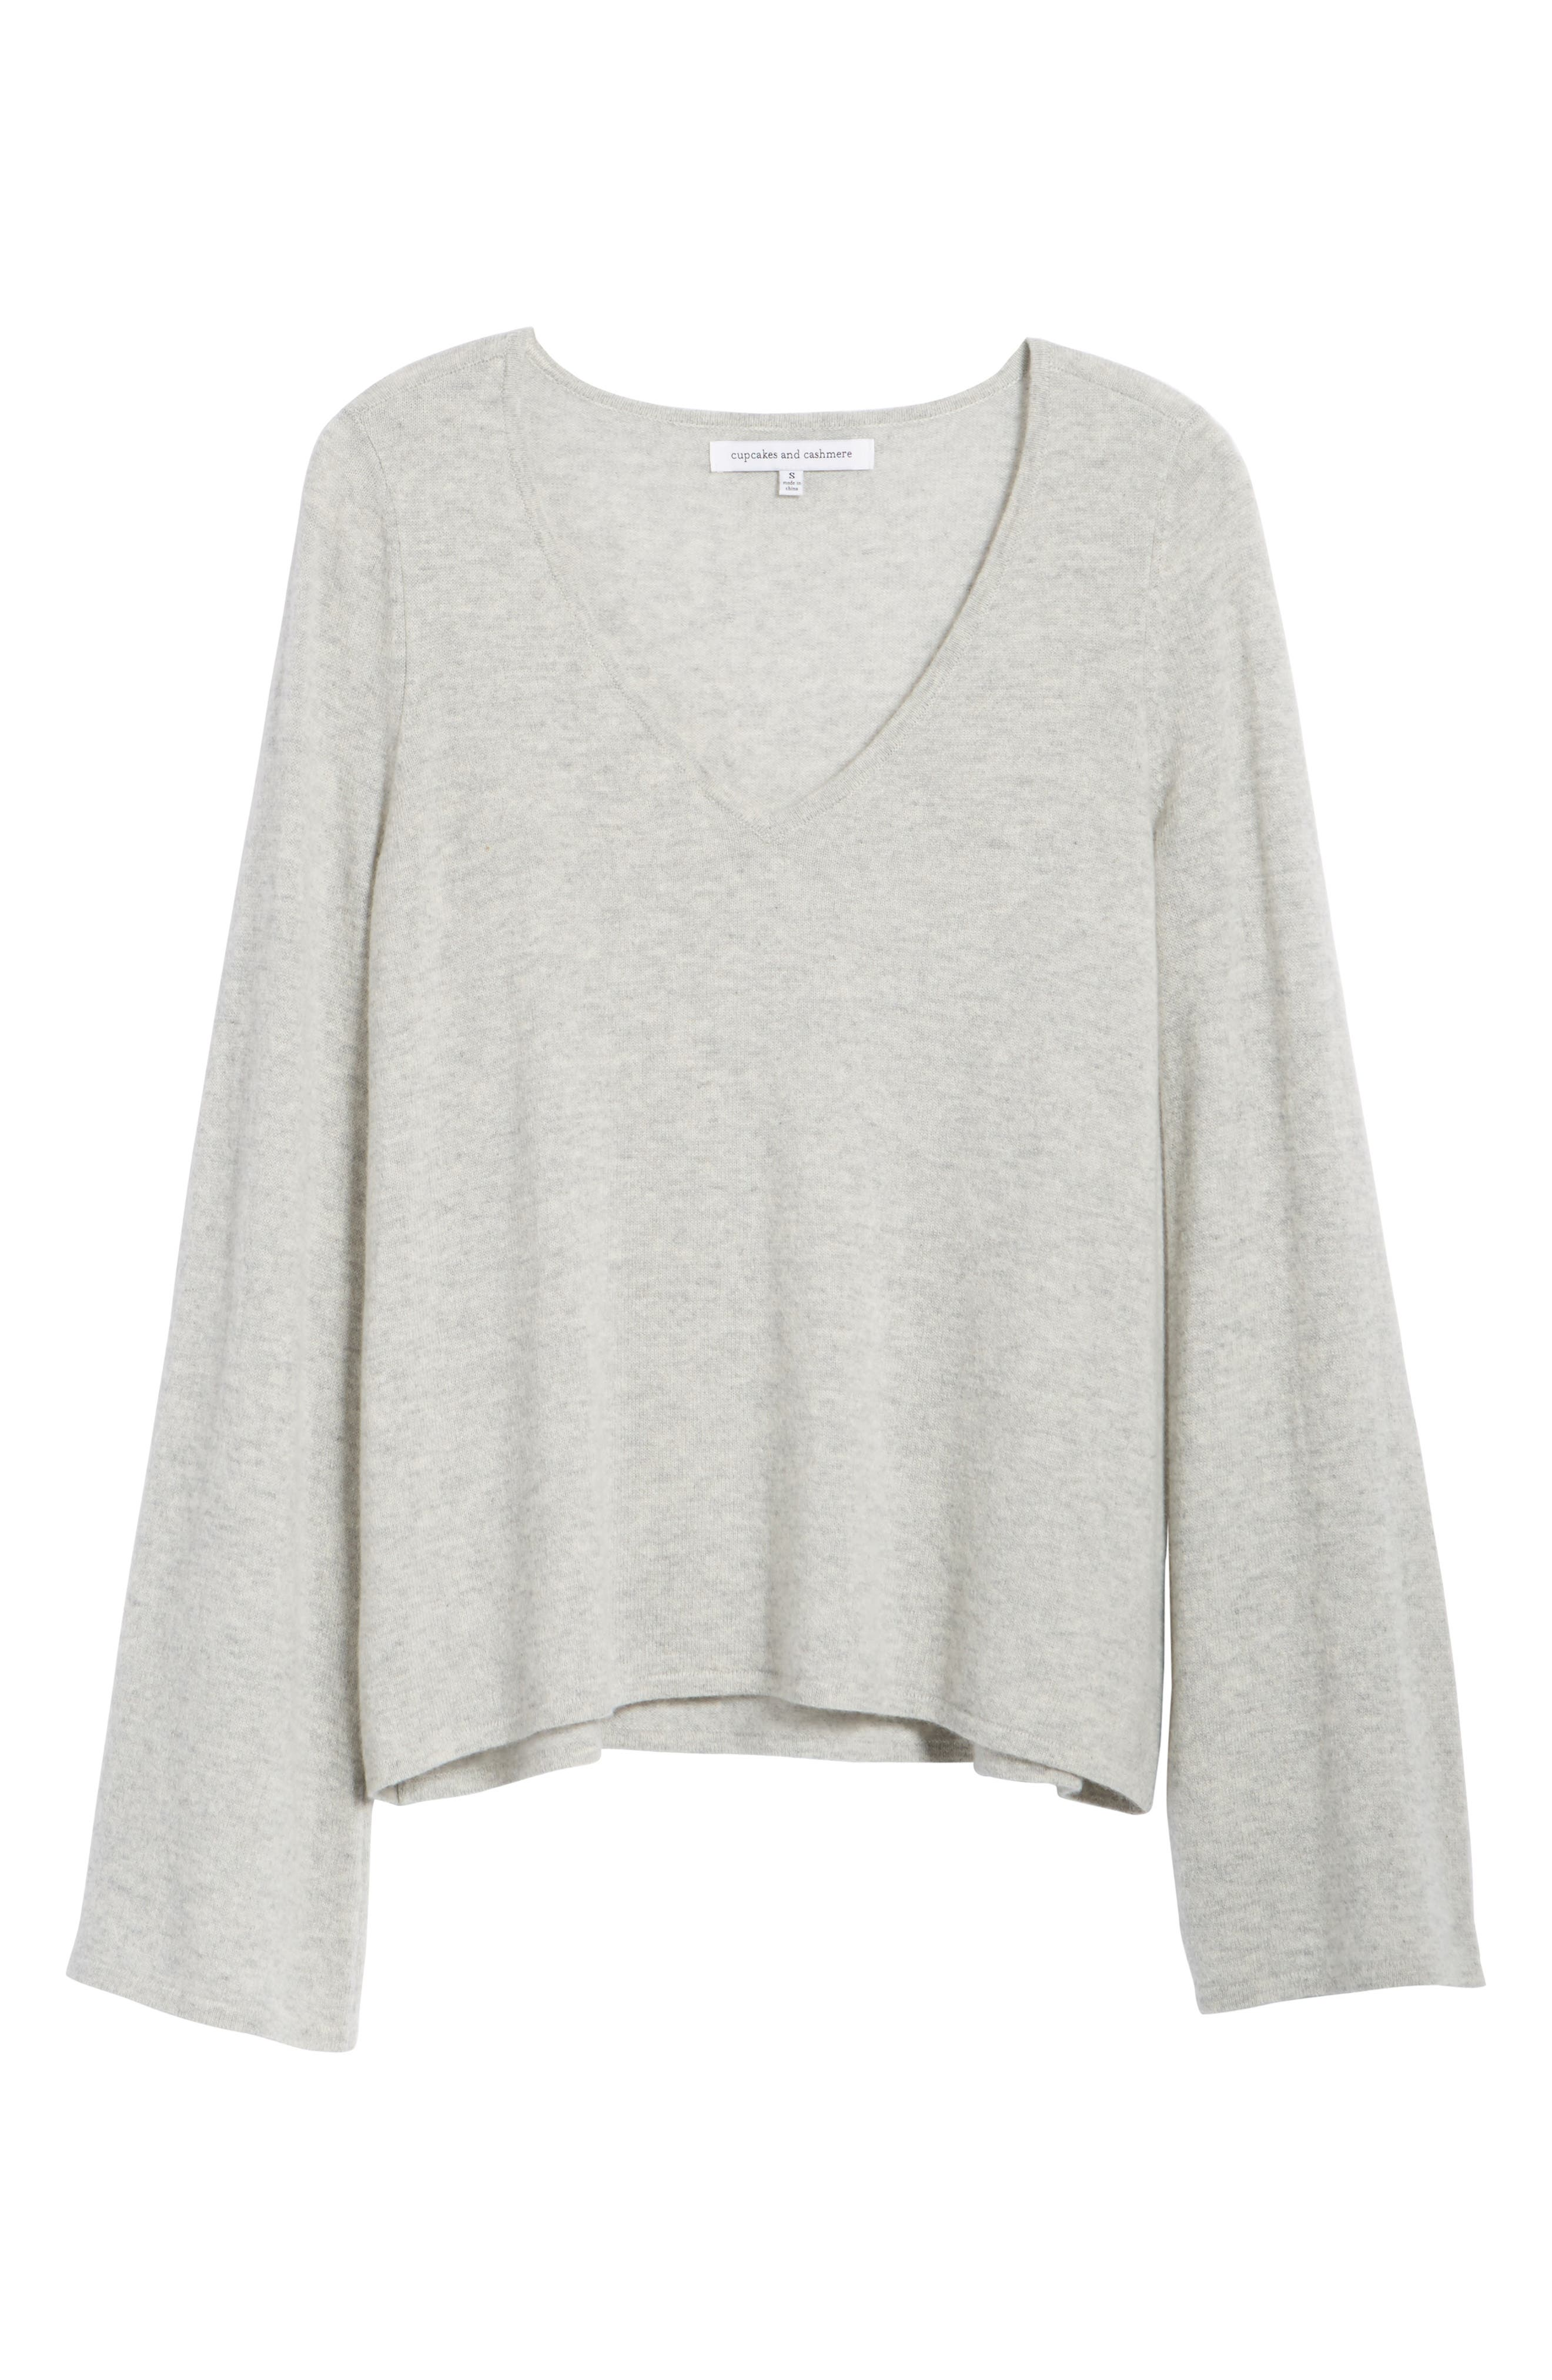 Marylee Cashmere Top,                             Alternate thumbnail 6, color,                             037